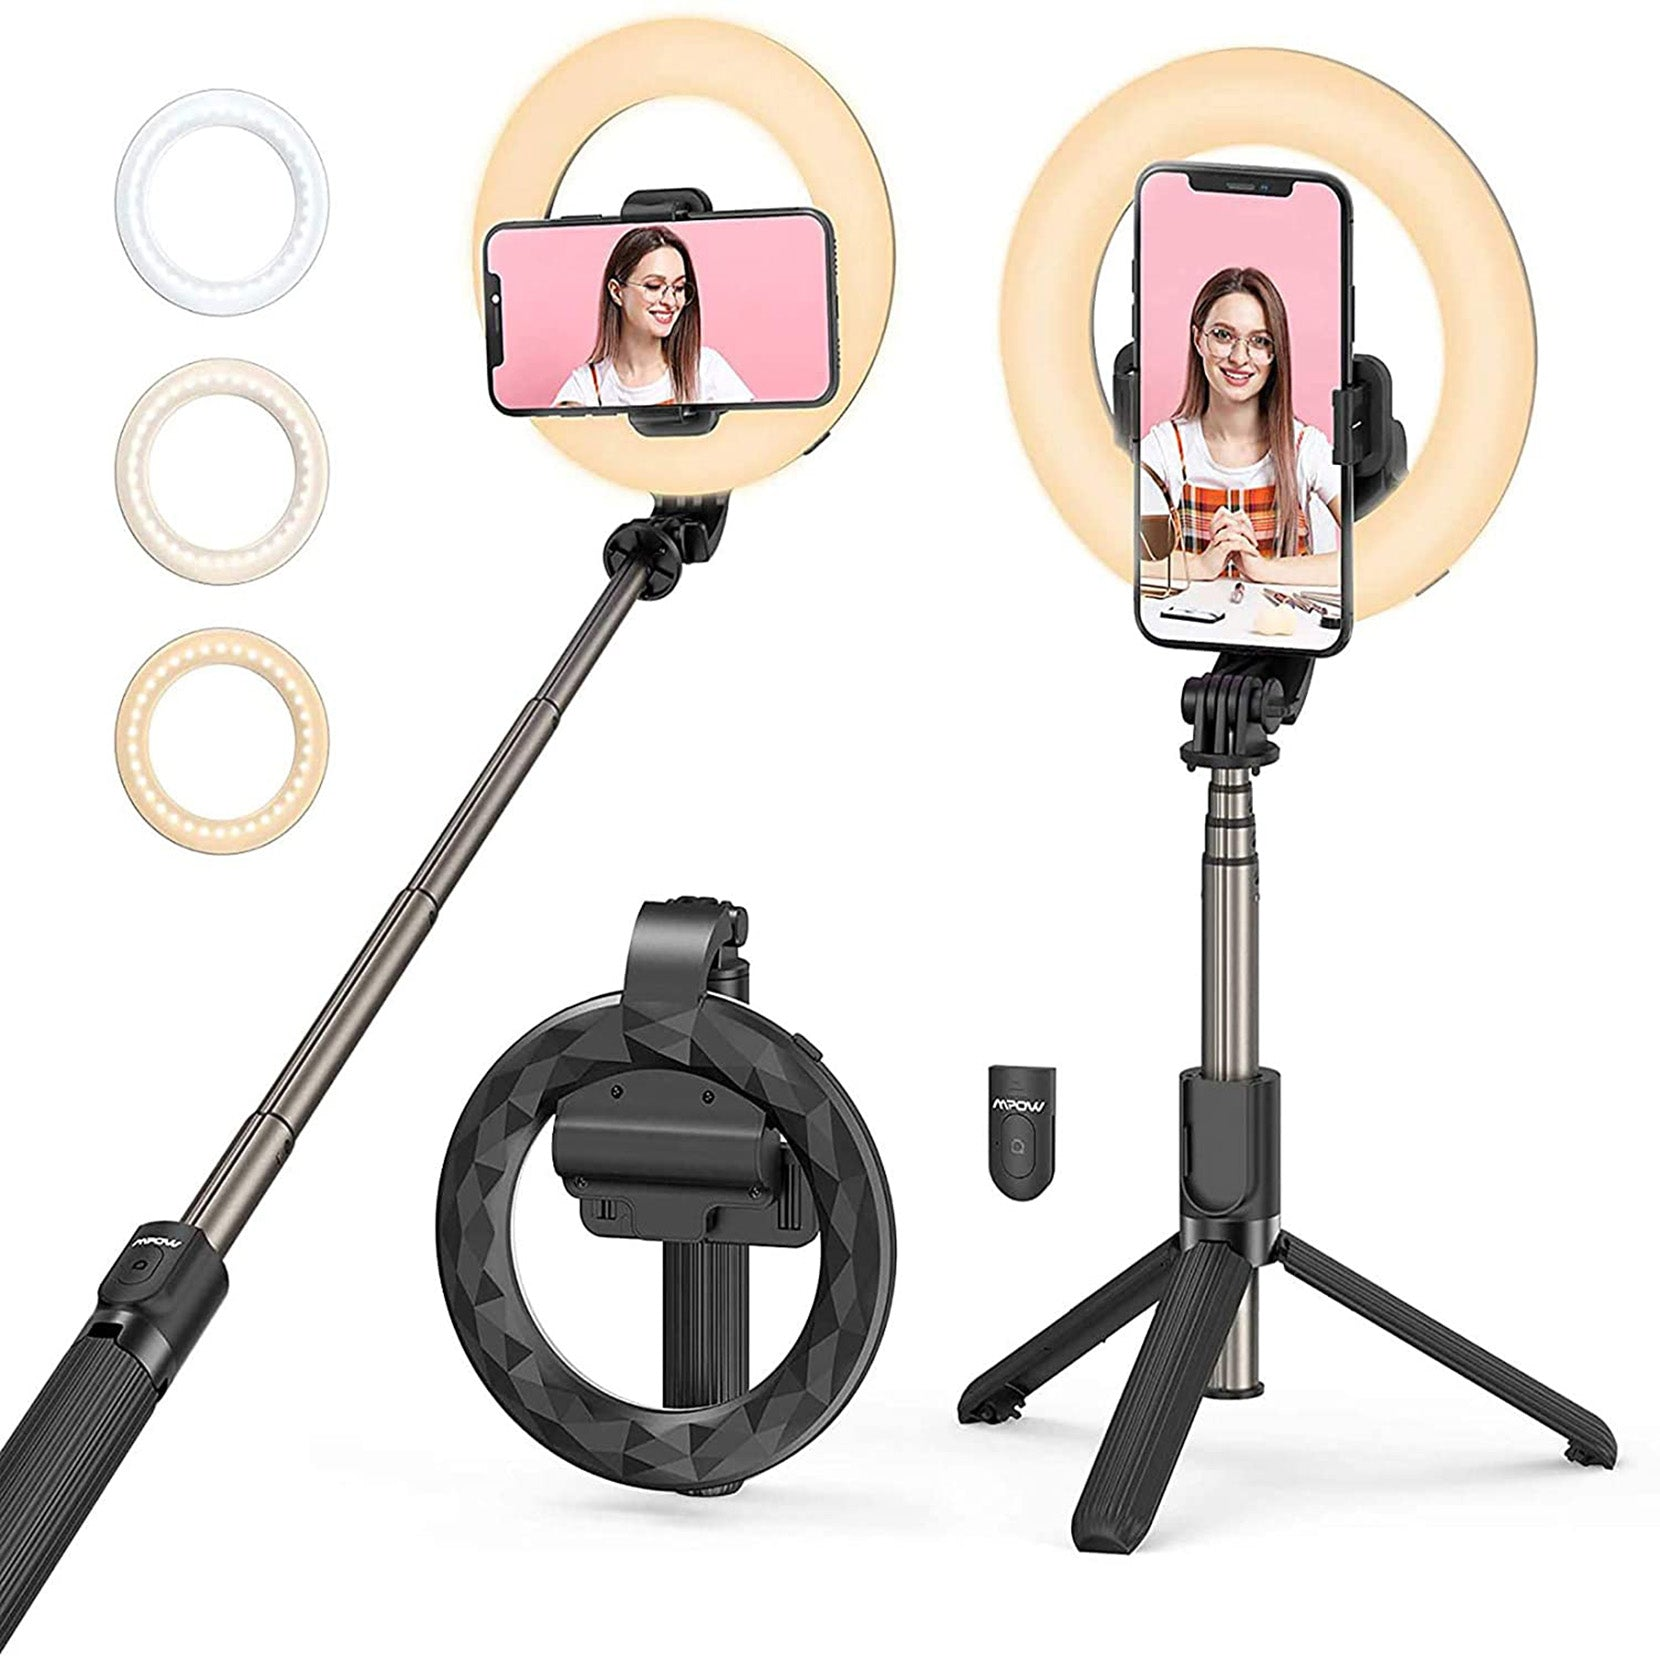 Ring Light with Tripod Stand & Phone Holder Selfie Stick for Makeup/TikTok, Mpow Selfie Ring Light, Portable and Dimmable, Compatible with iPhone 12